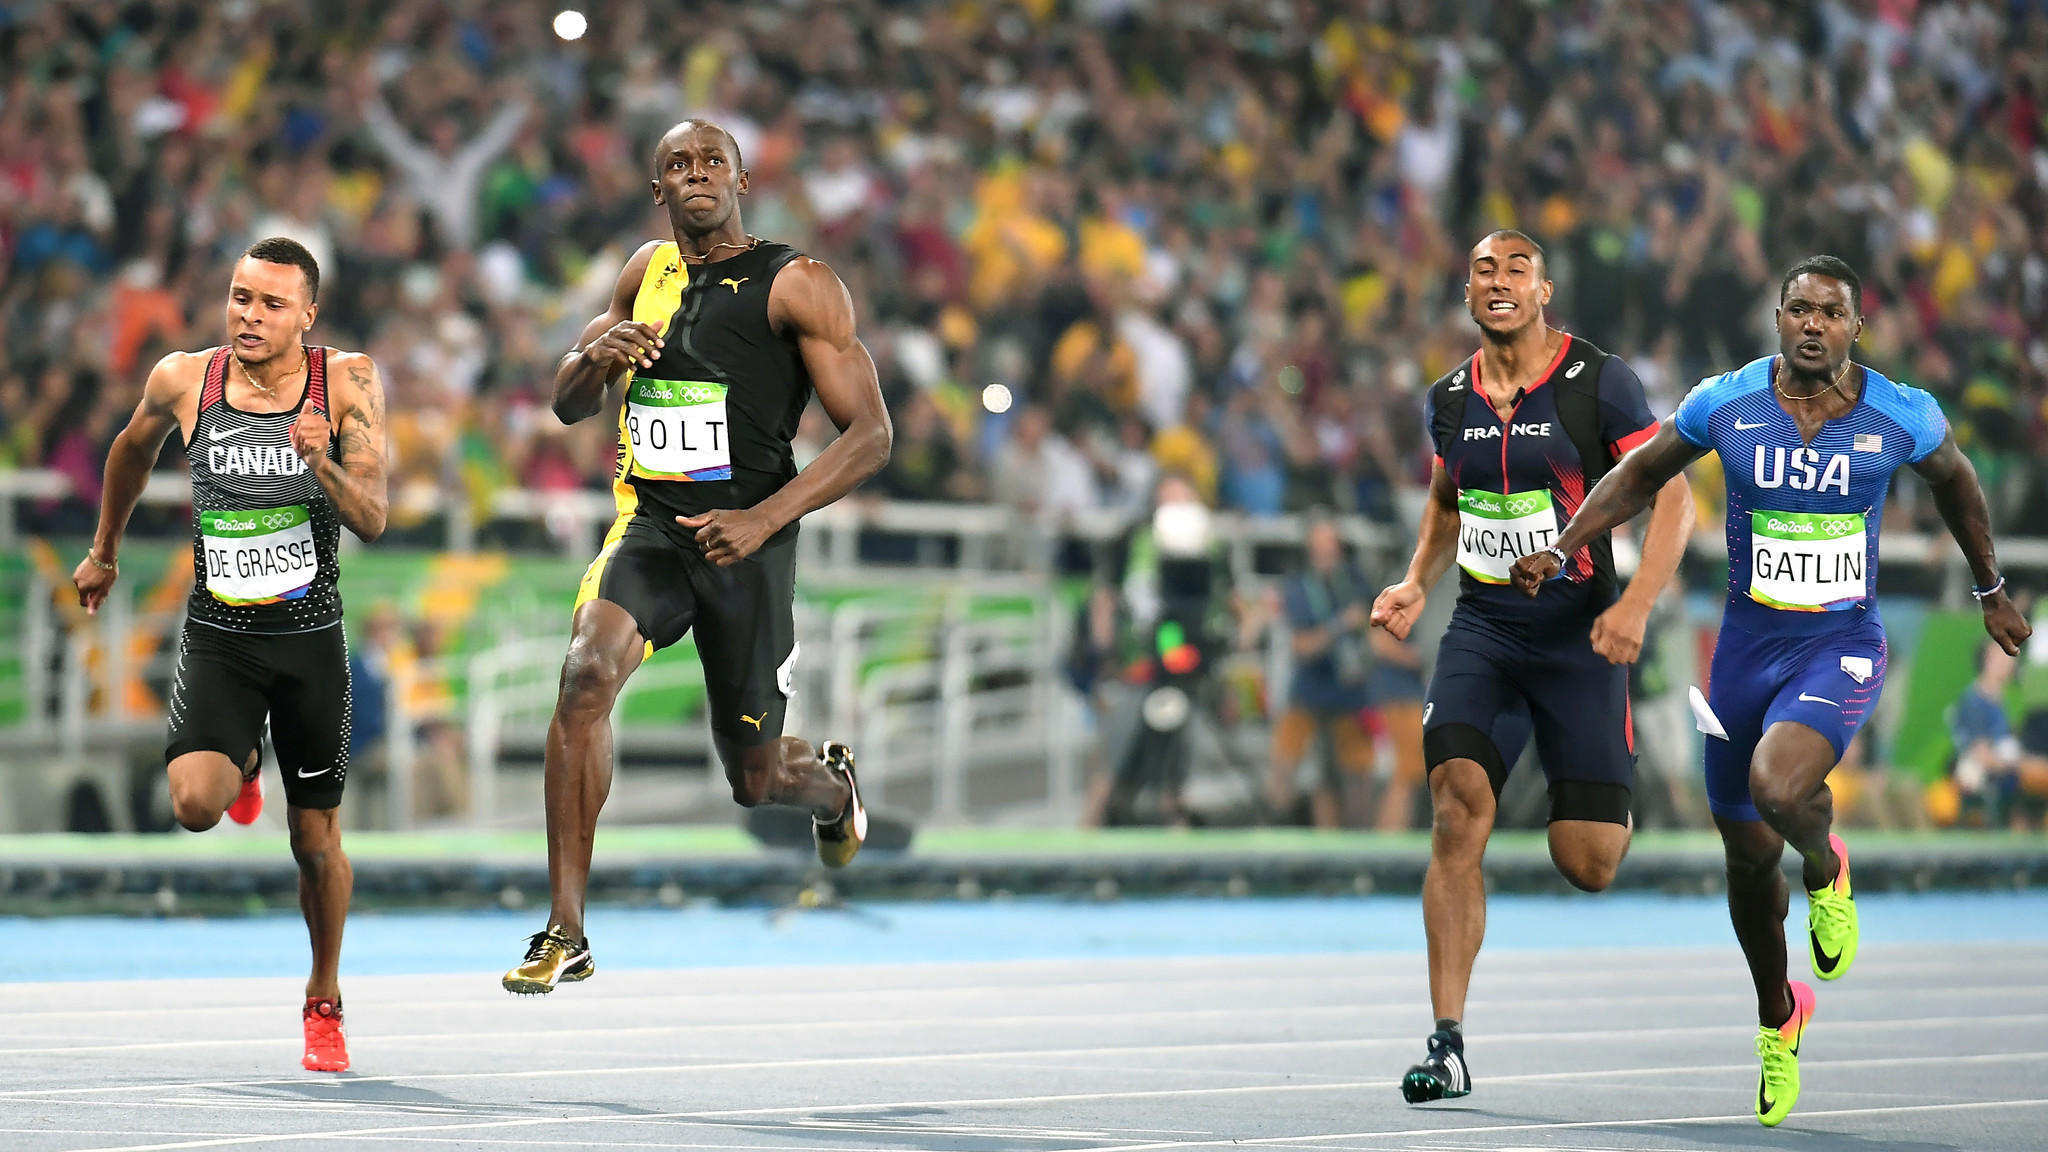 Third consecutive olympic gold in 100 meter dash orlando sentinel